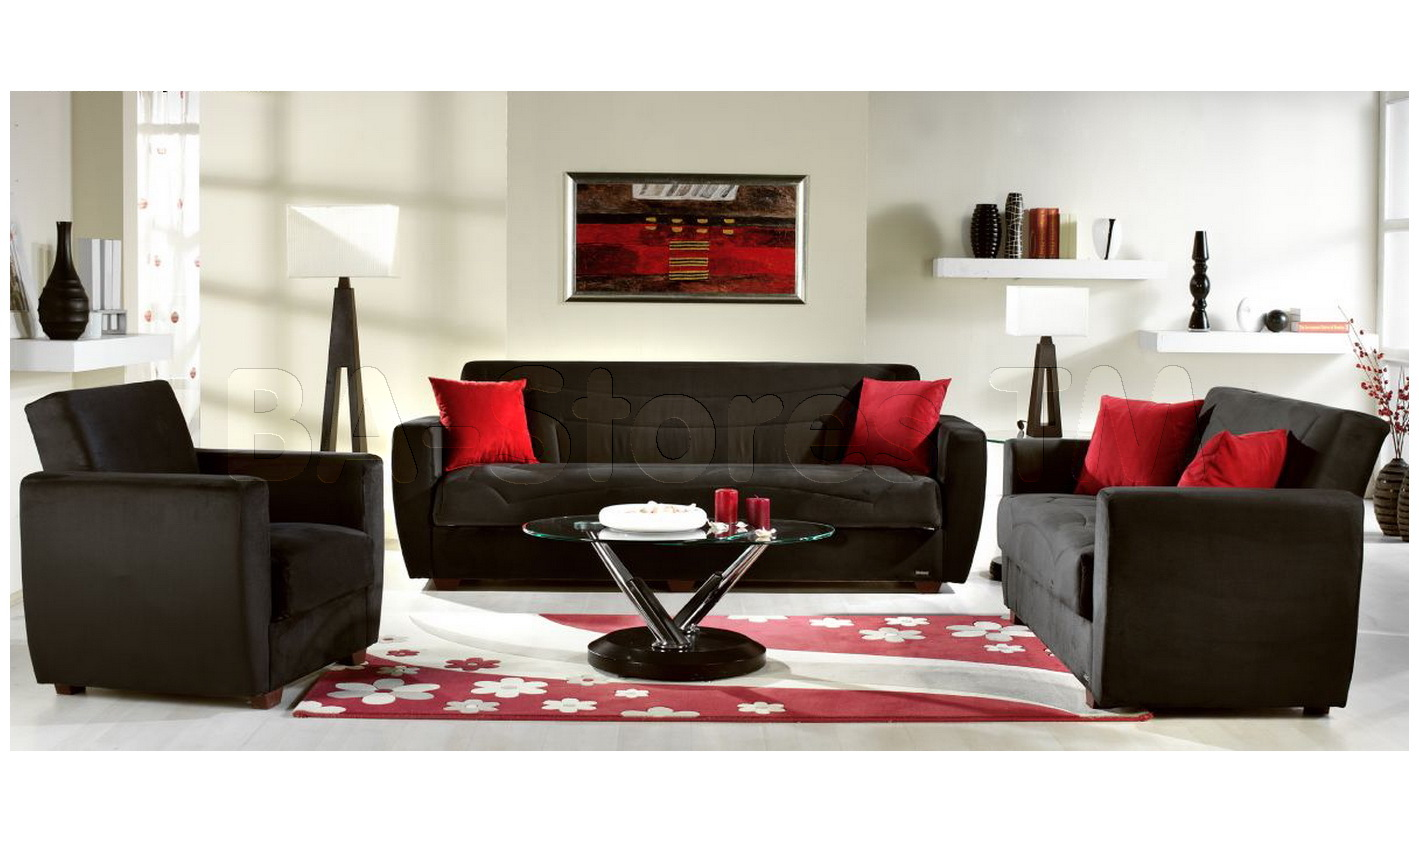 Black Sofas Of Modern Look In A Living Room: Miami Sofa Bed In Rainbow Black